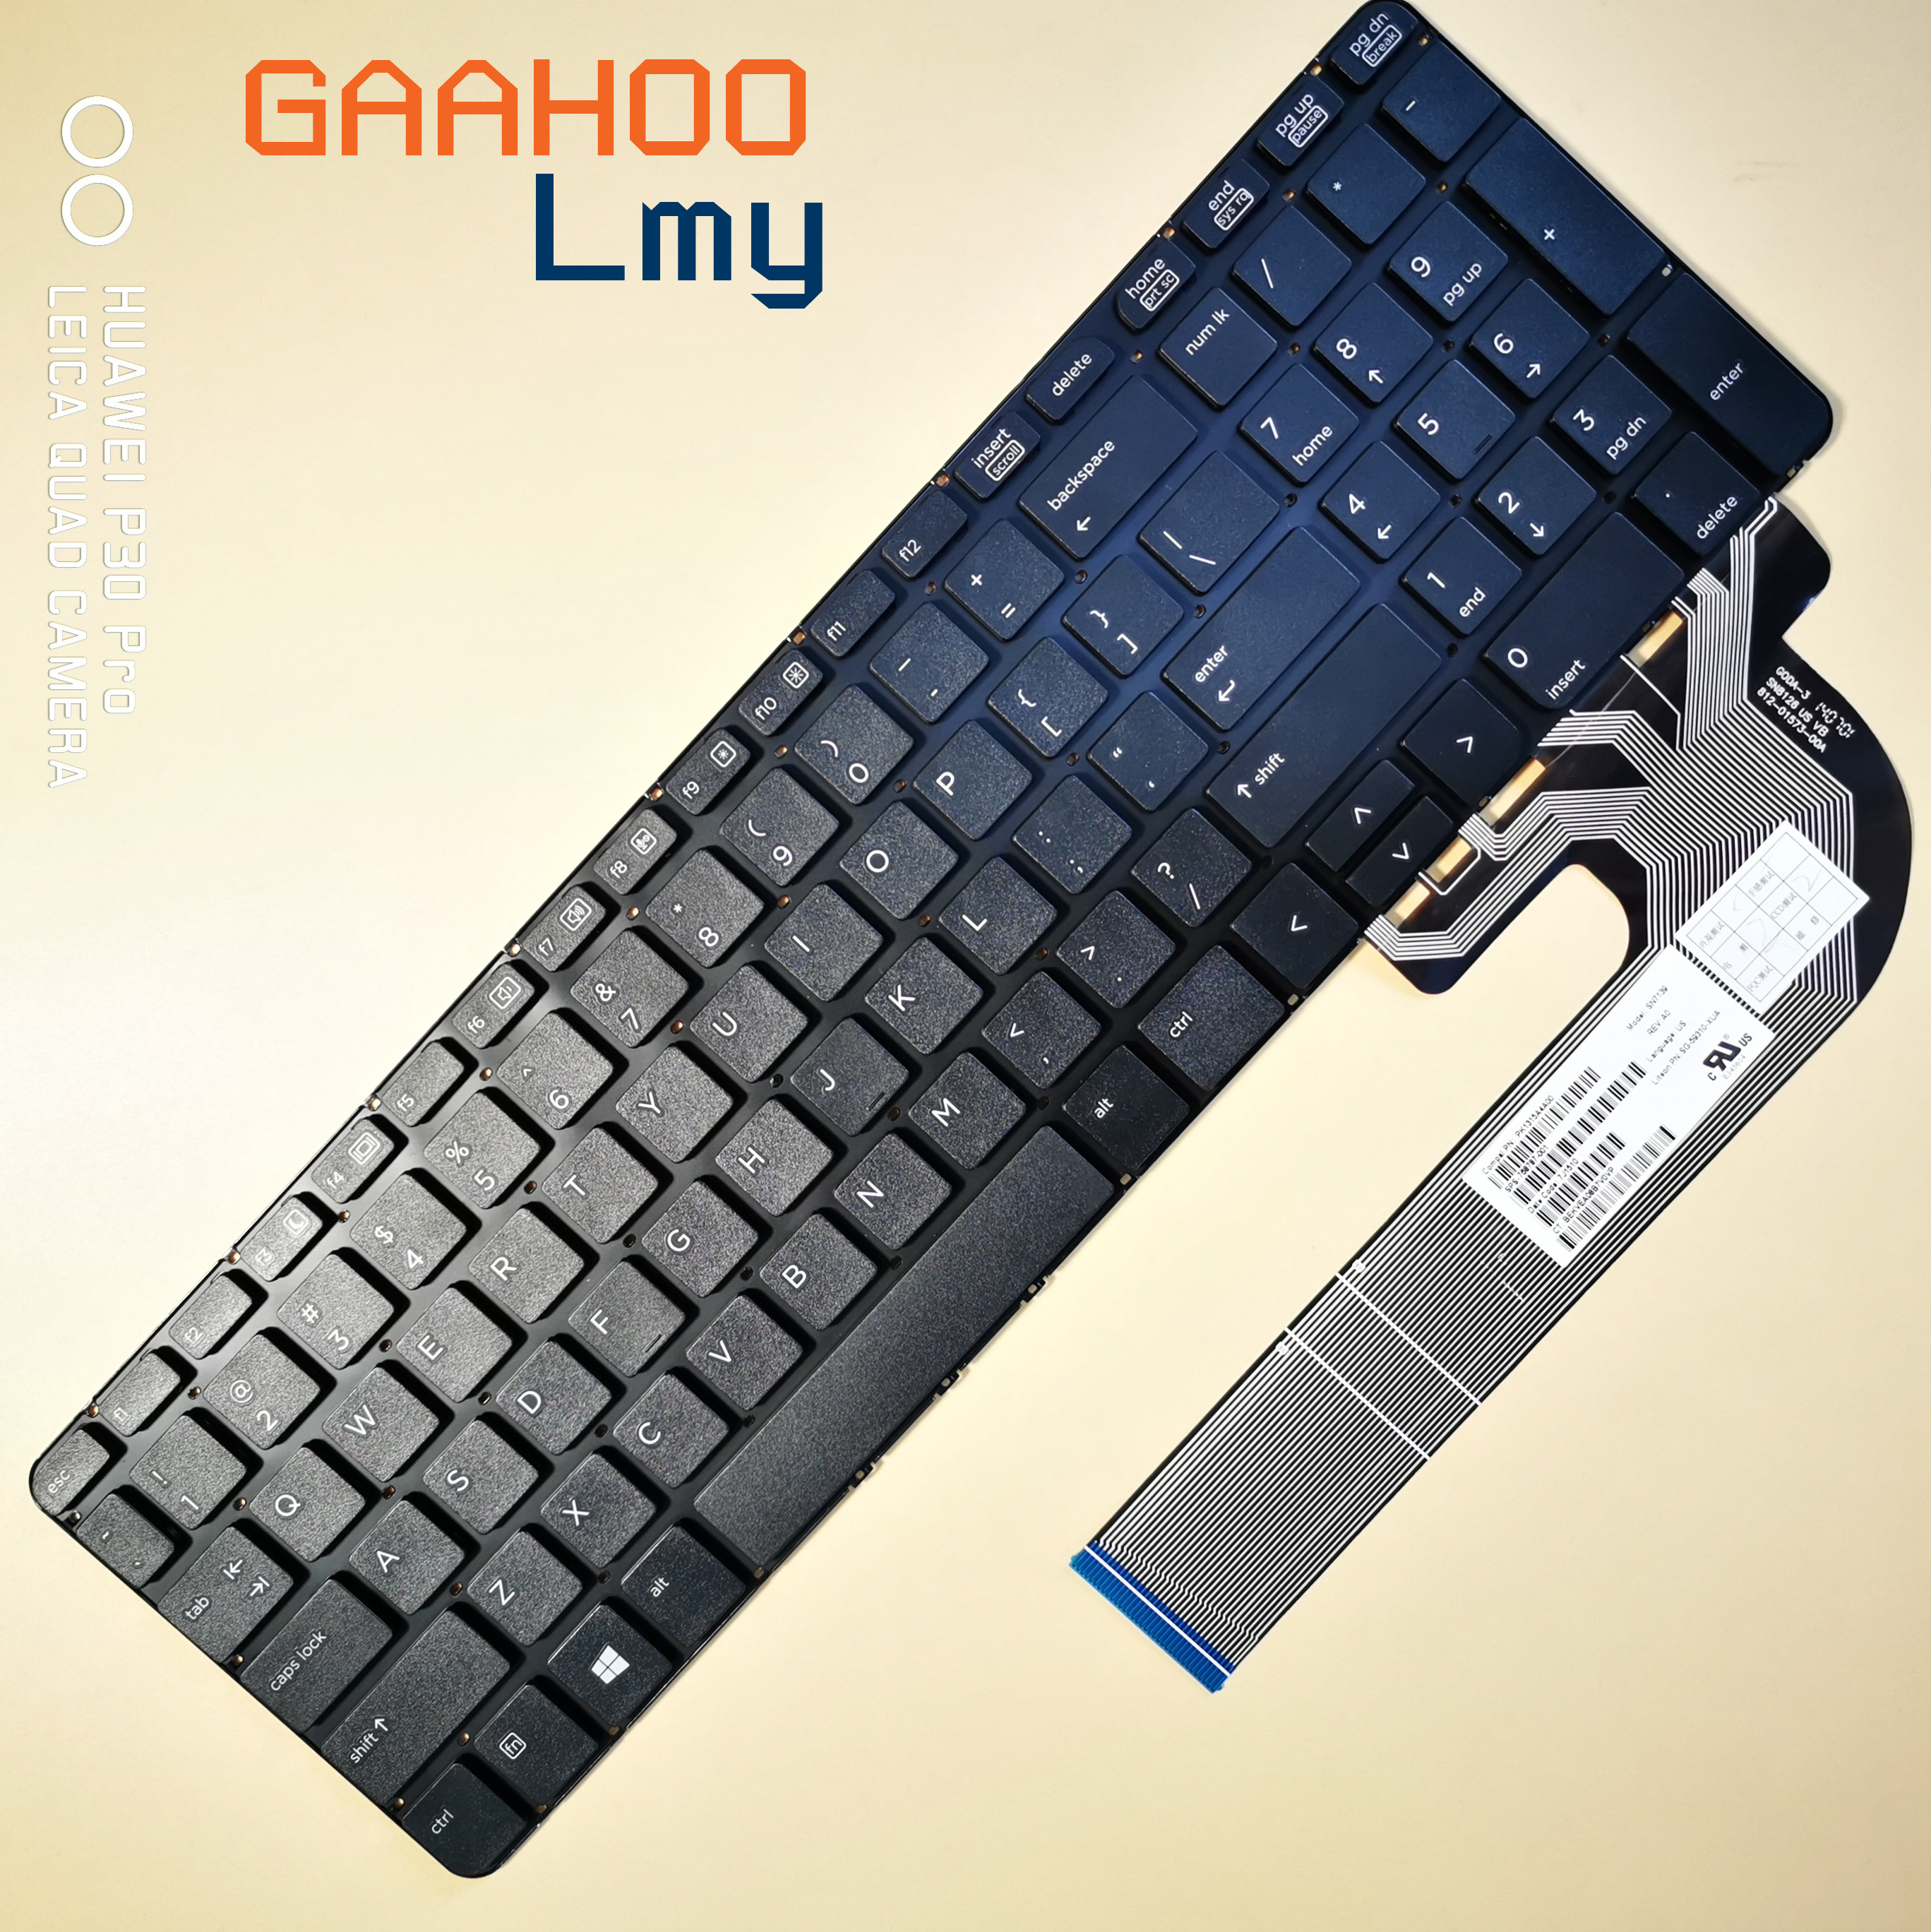 Brand New Orig US Keyboard For HP Probook 450 G0 450 G1 470 455 G1 450-G1 450 G2 455 G2 470 G0 G1 G2 W/O Frame English Keyboard